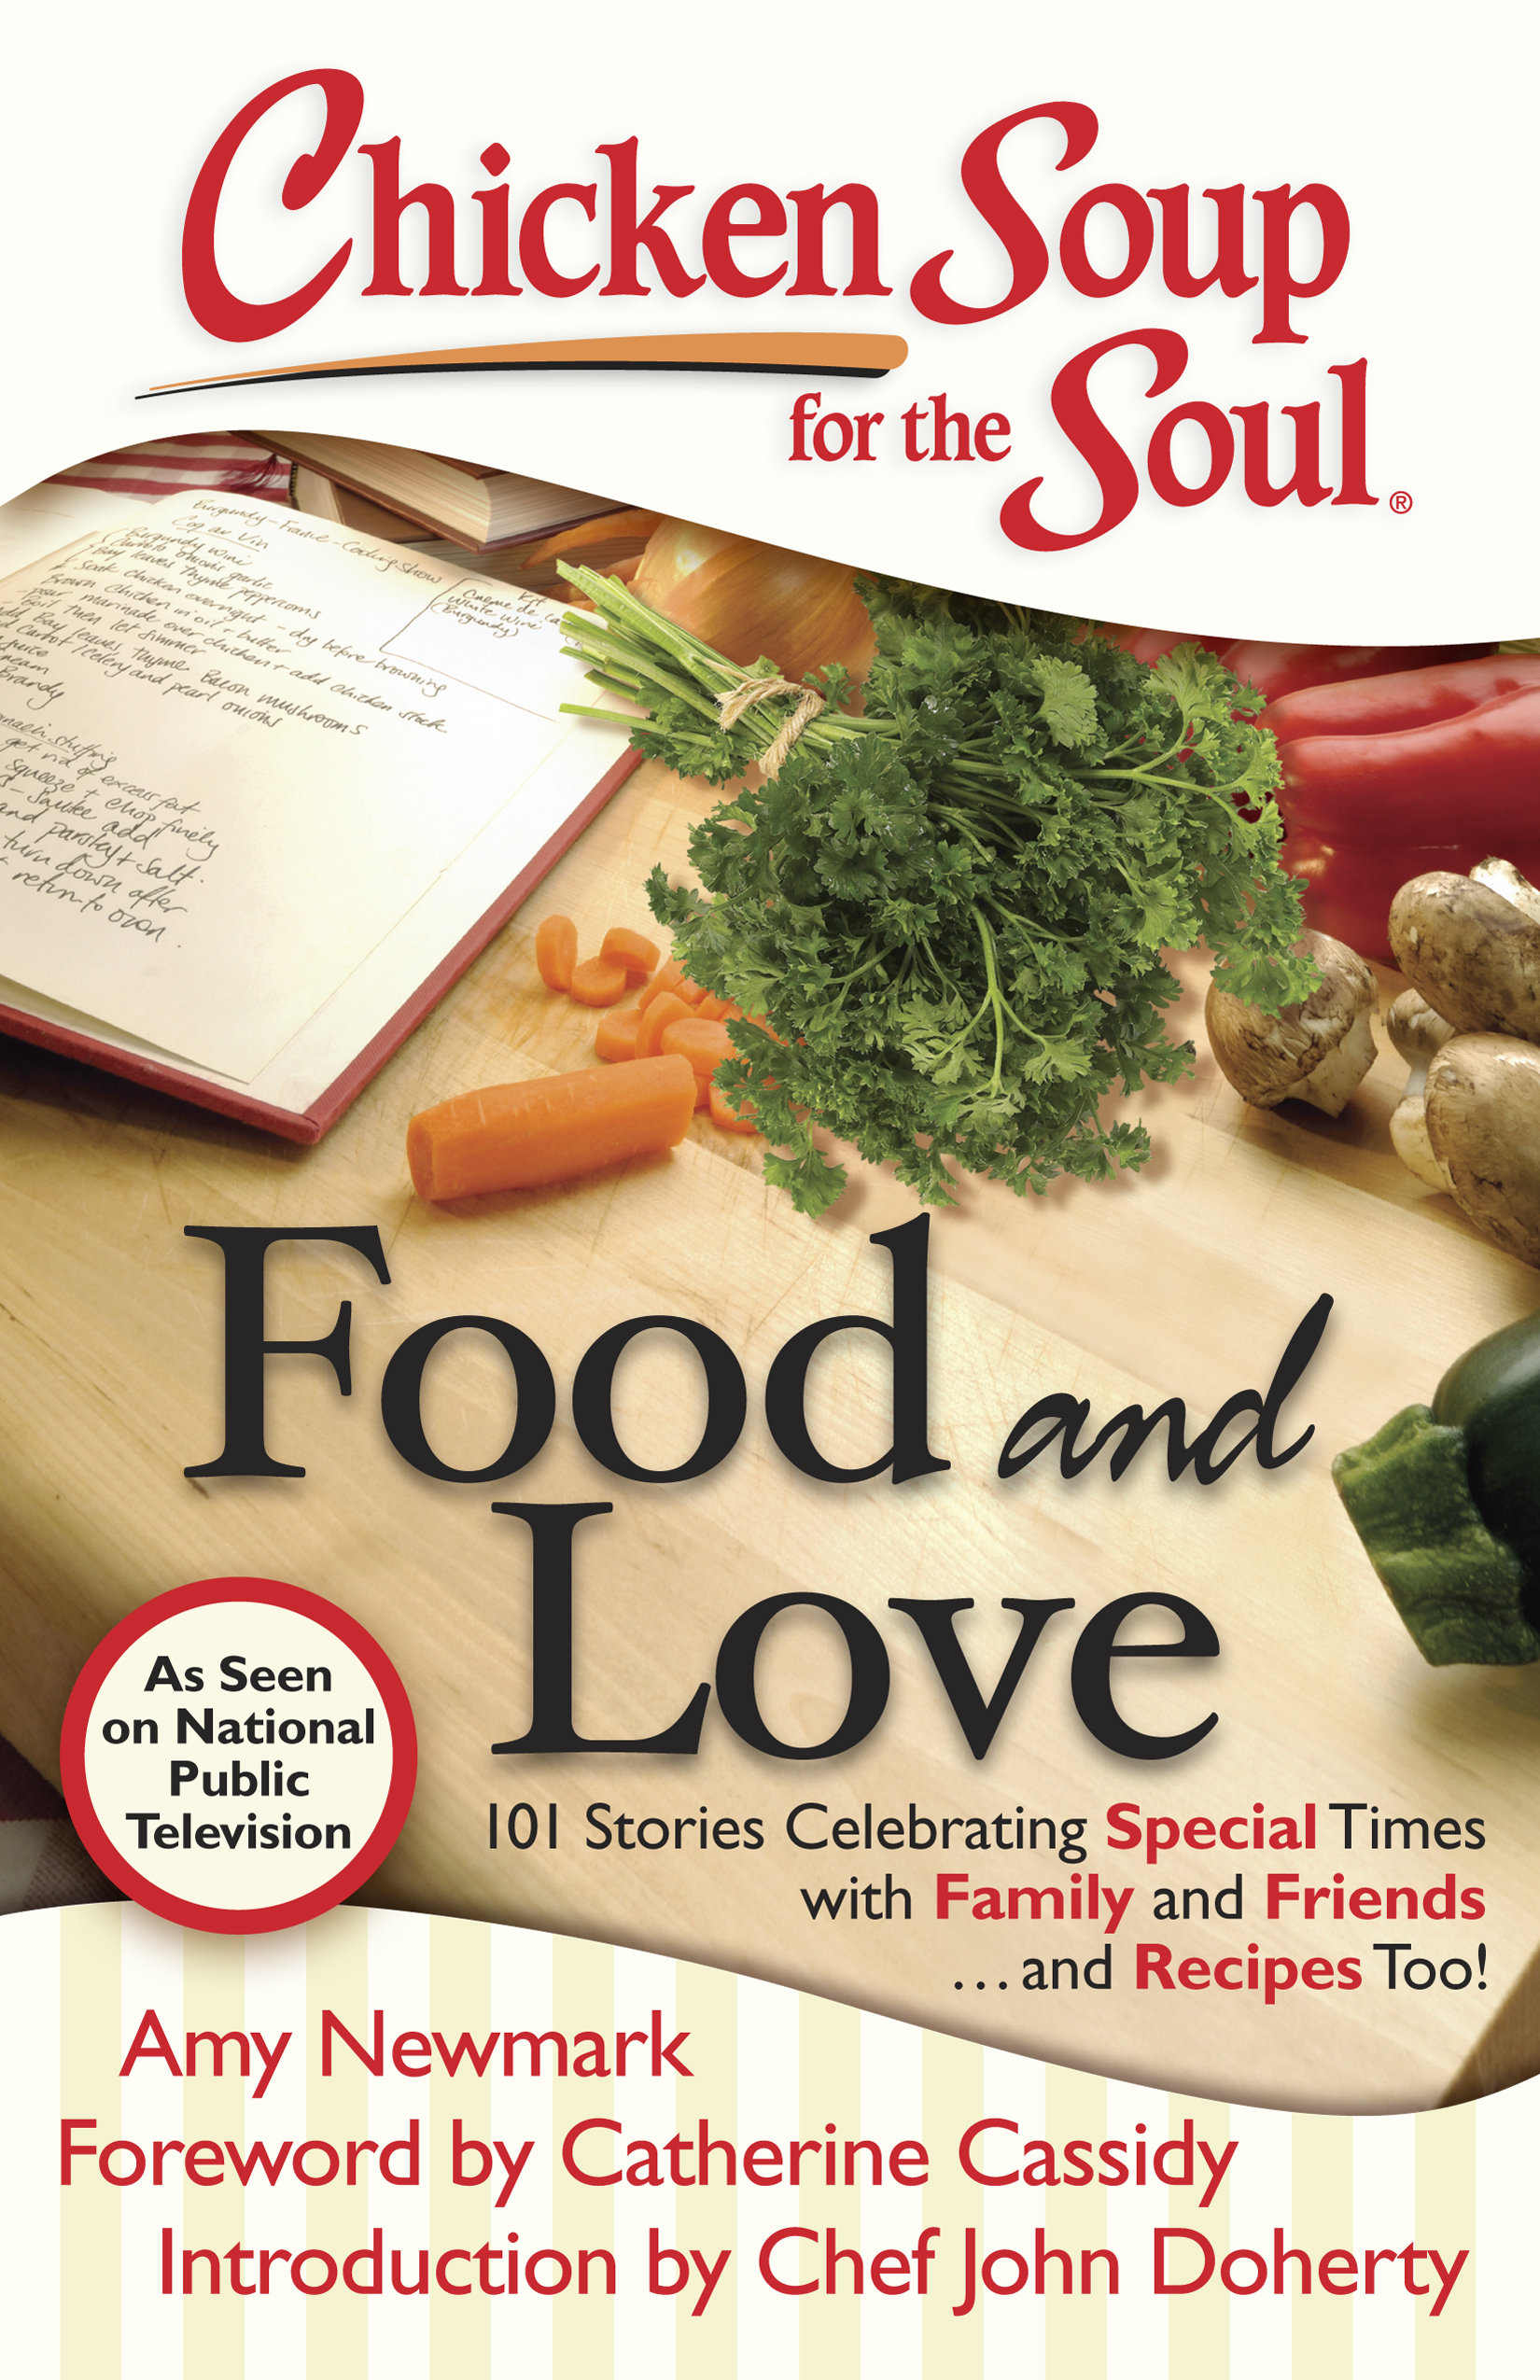 Chicken soup for the soul food and love book by amy newmark 101 stories celebrating special times with family and friends and recipes too forumfinder Images